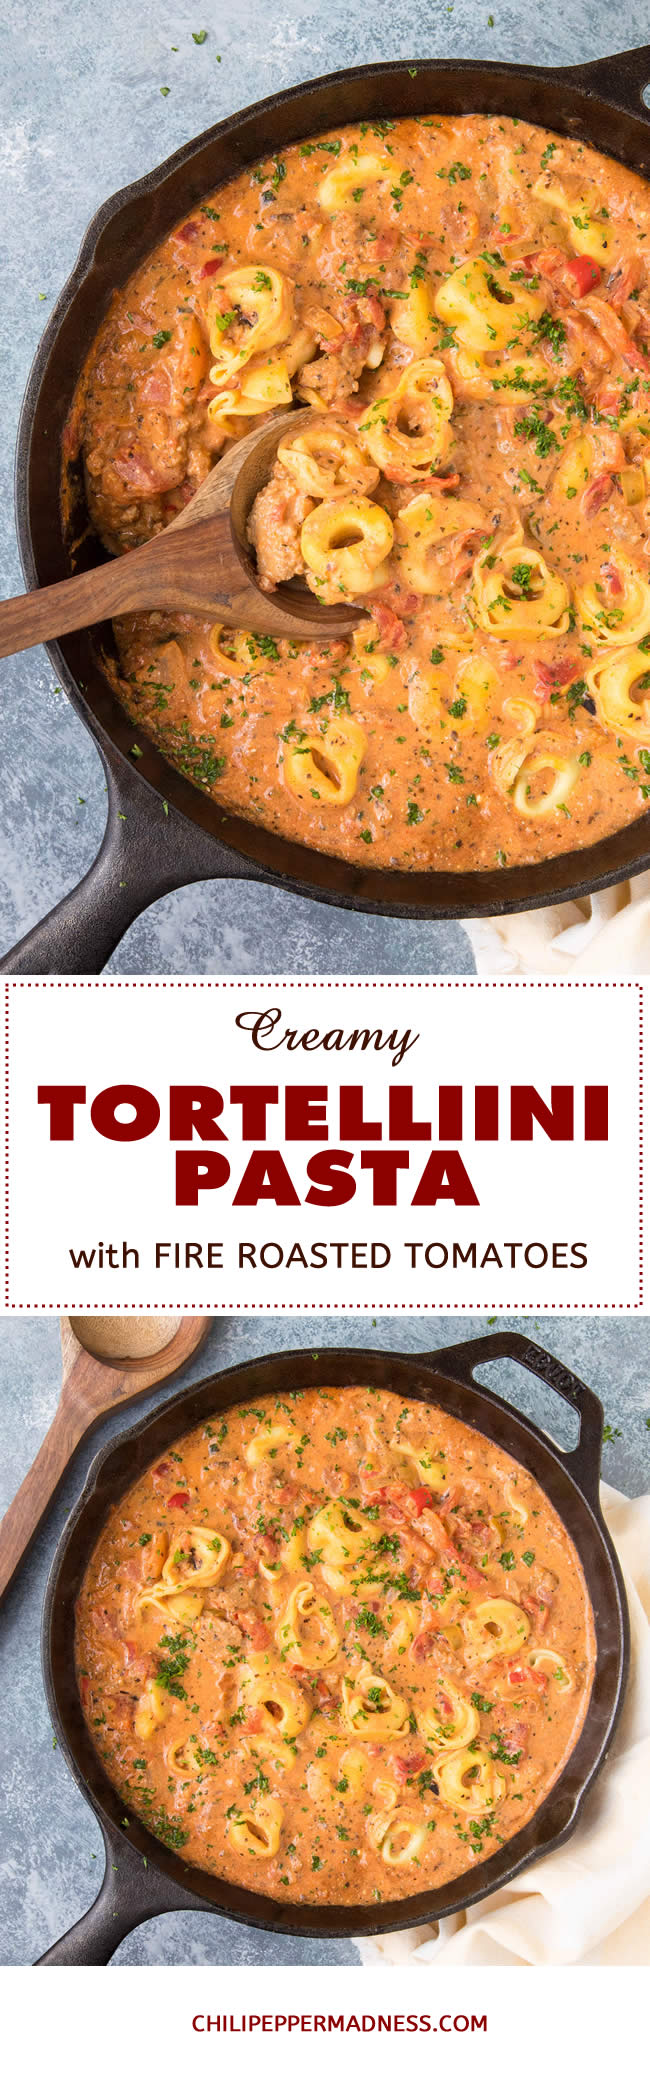 Creamy Tortellini Pasta with Fire Roasted Tomatoes - Recipe | ChiliPepperMadness.com #pasta #tortellini #EasyMeals #Dinner #SpicyFood